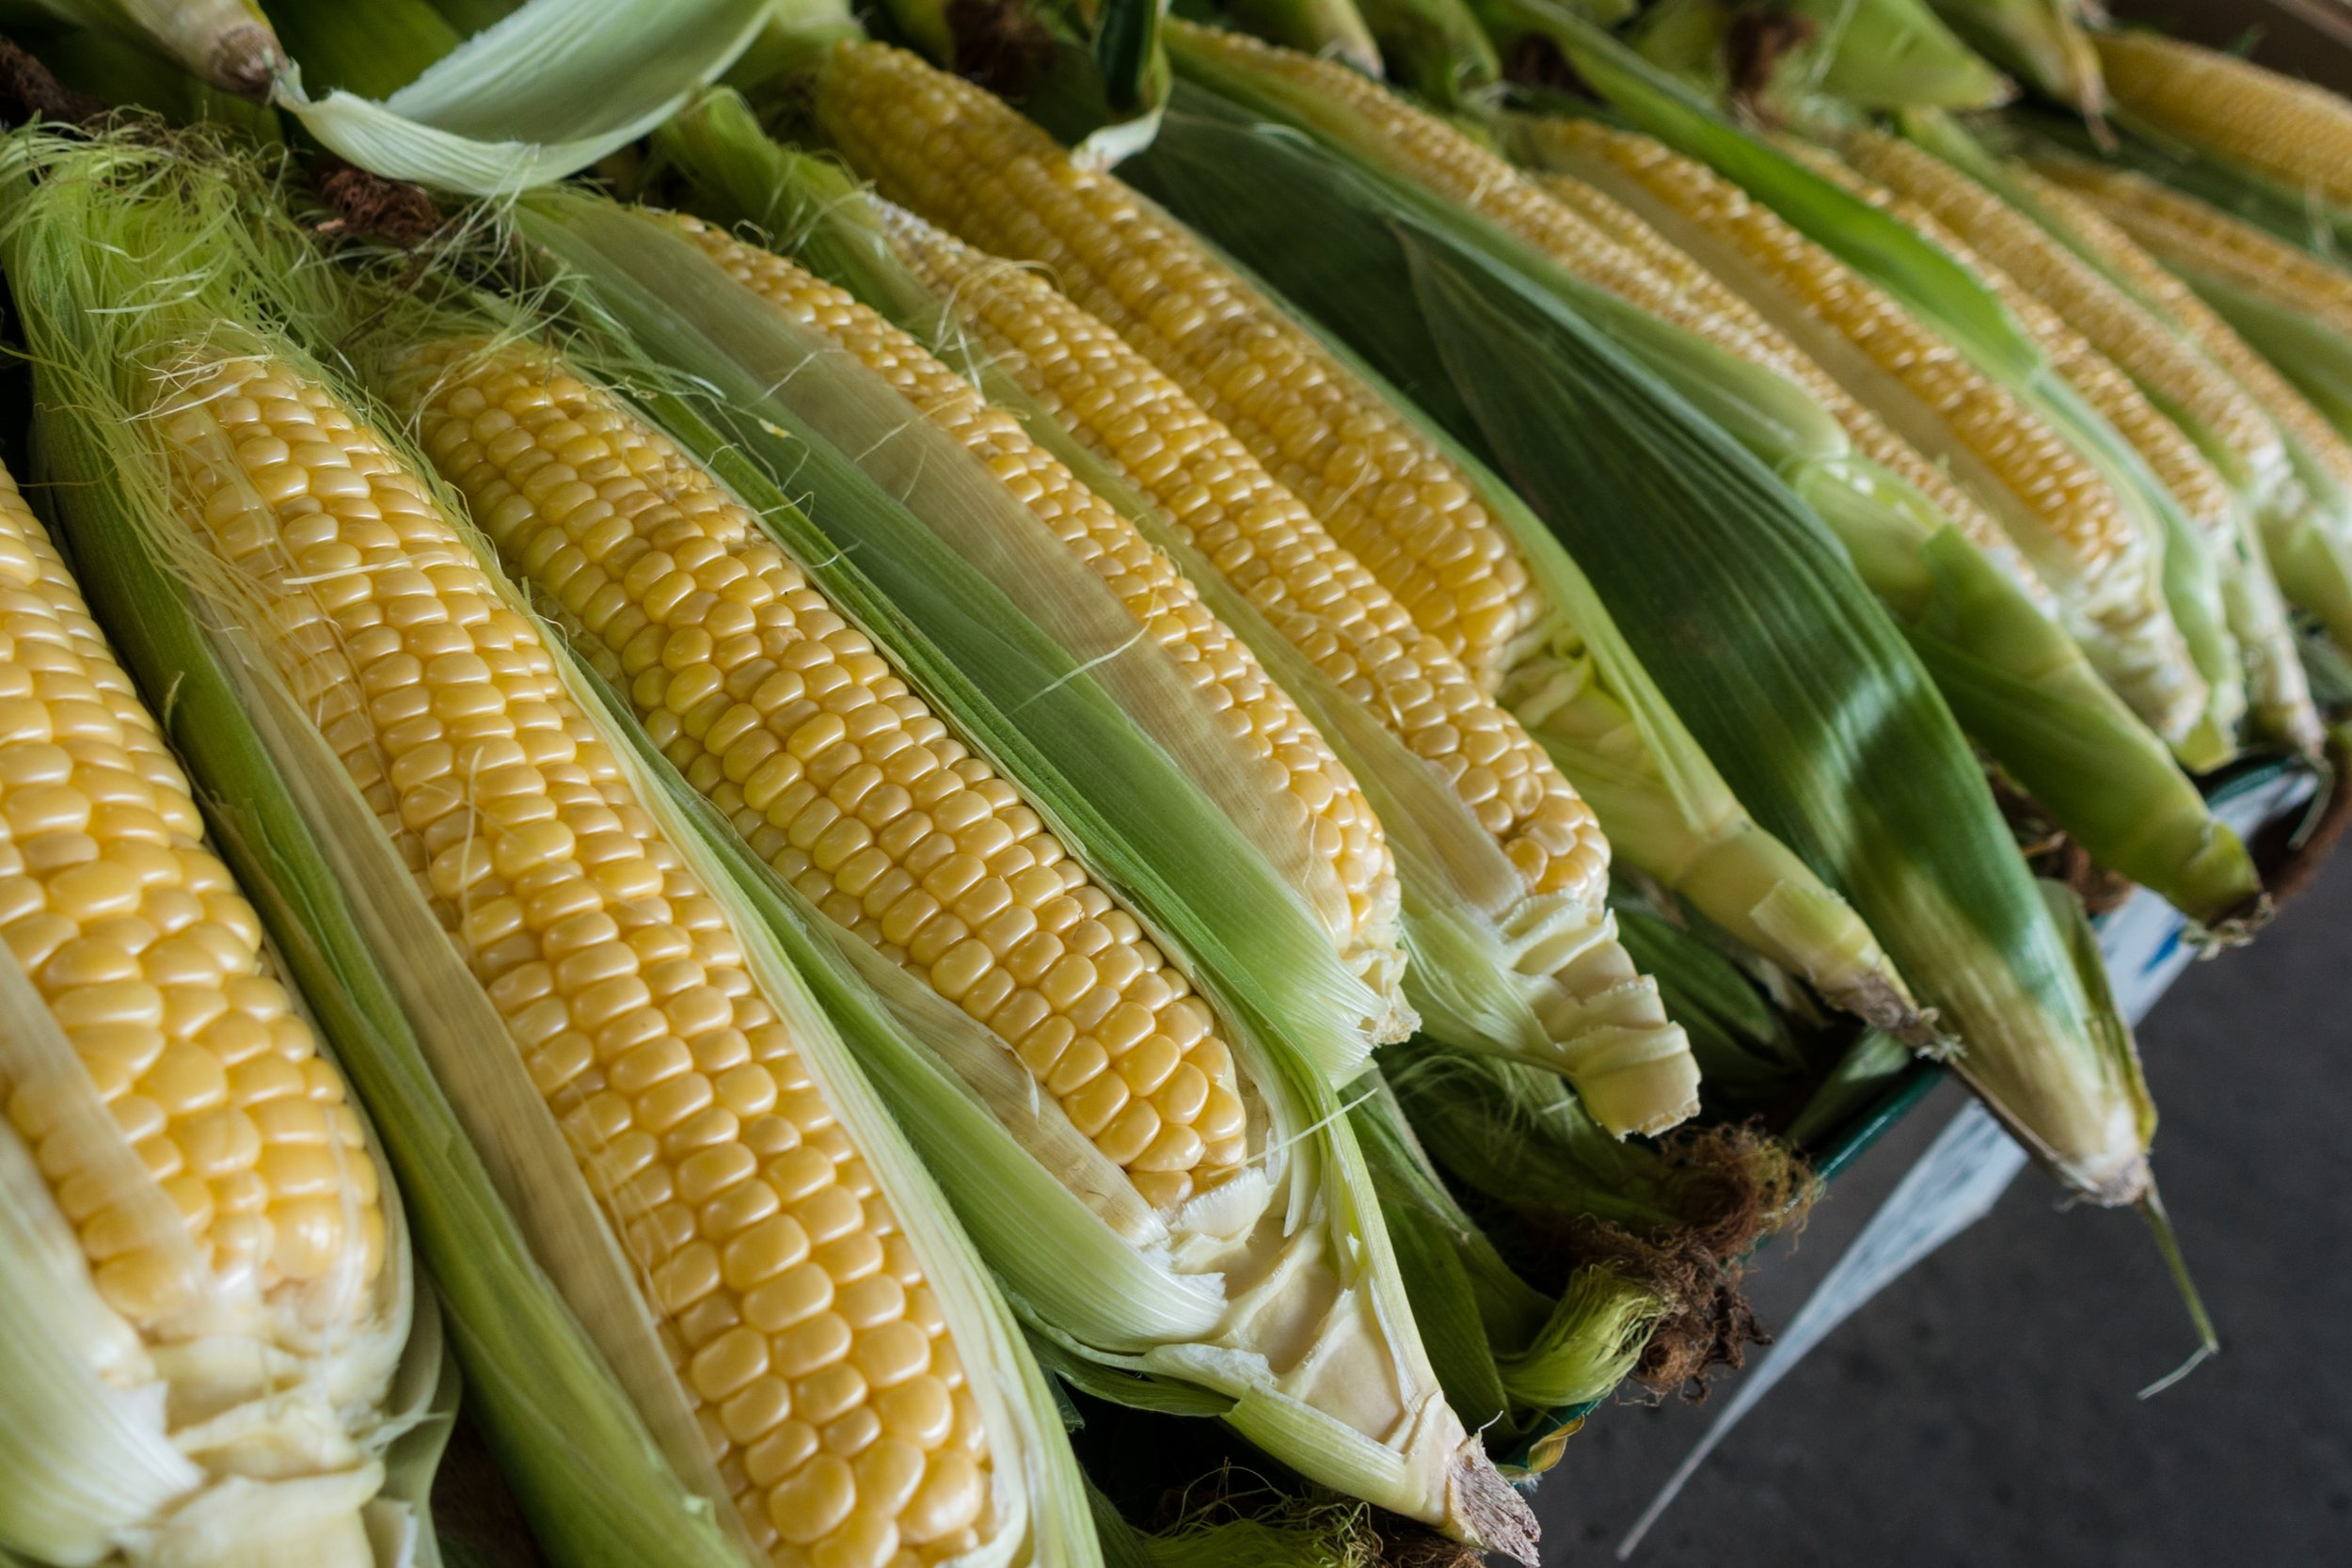 Mirai sweet corn just looks like all the other kinds of corn.